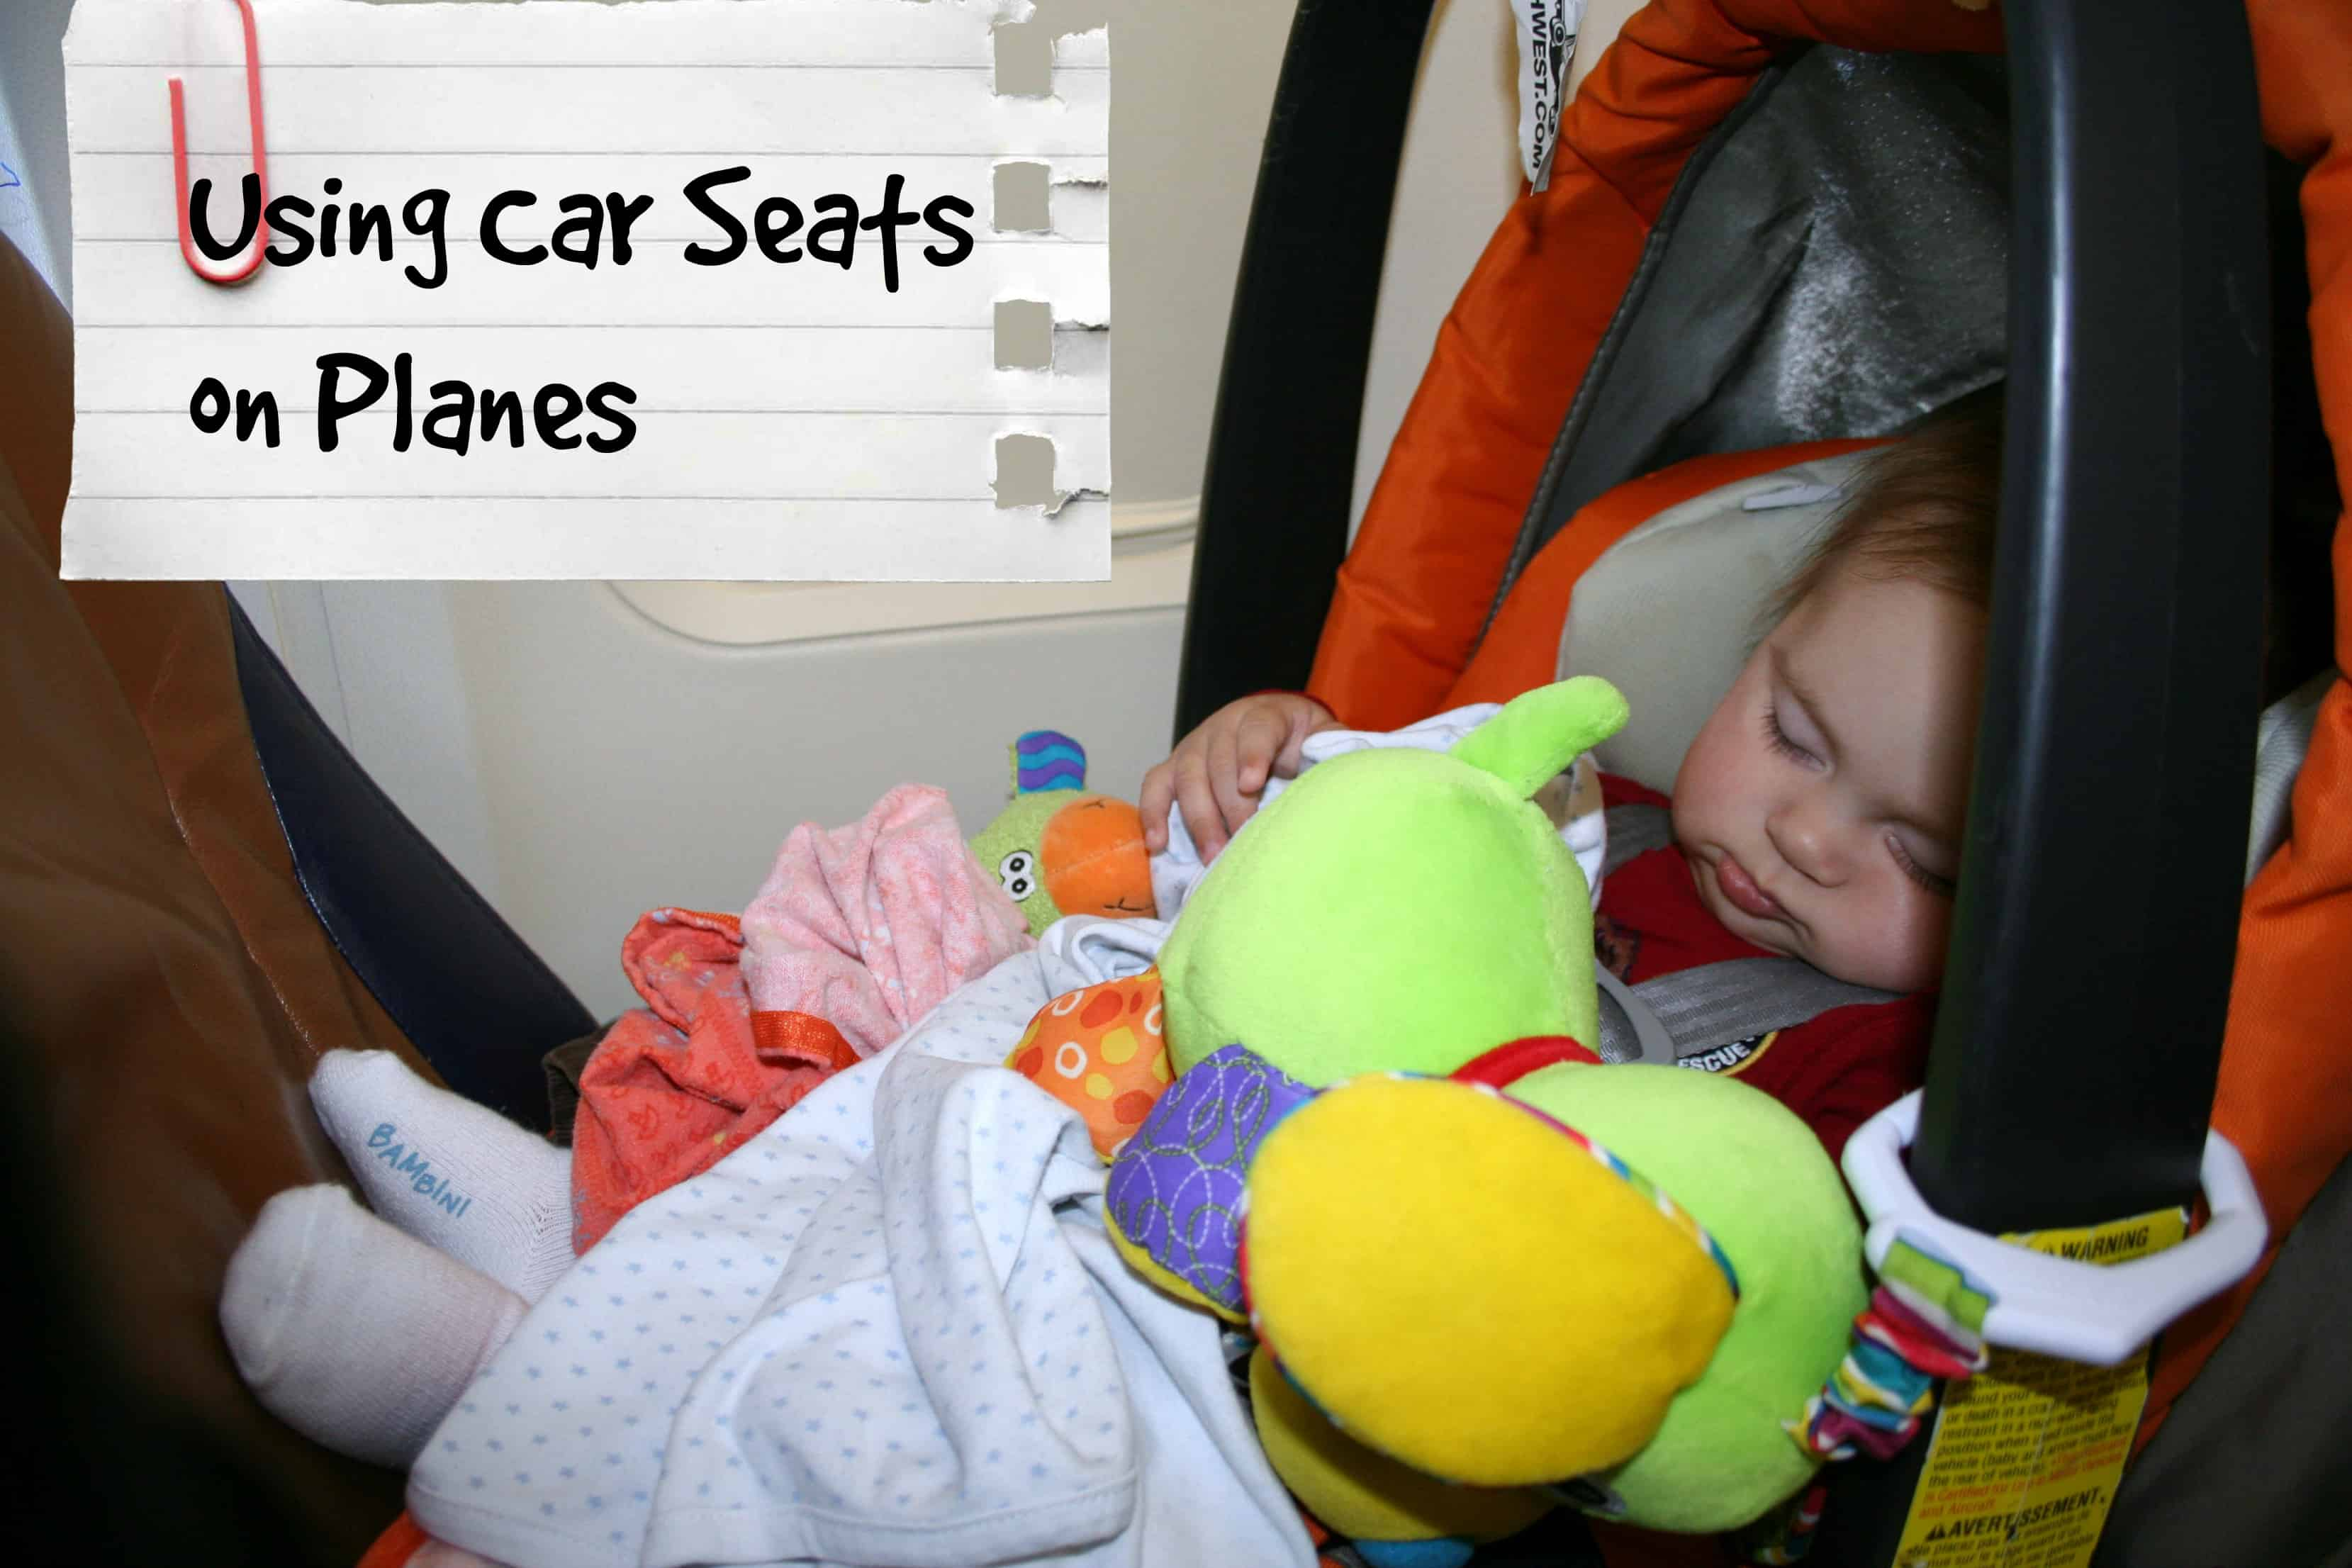 Airplane Car Seats Toddlers